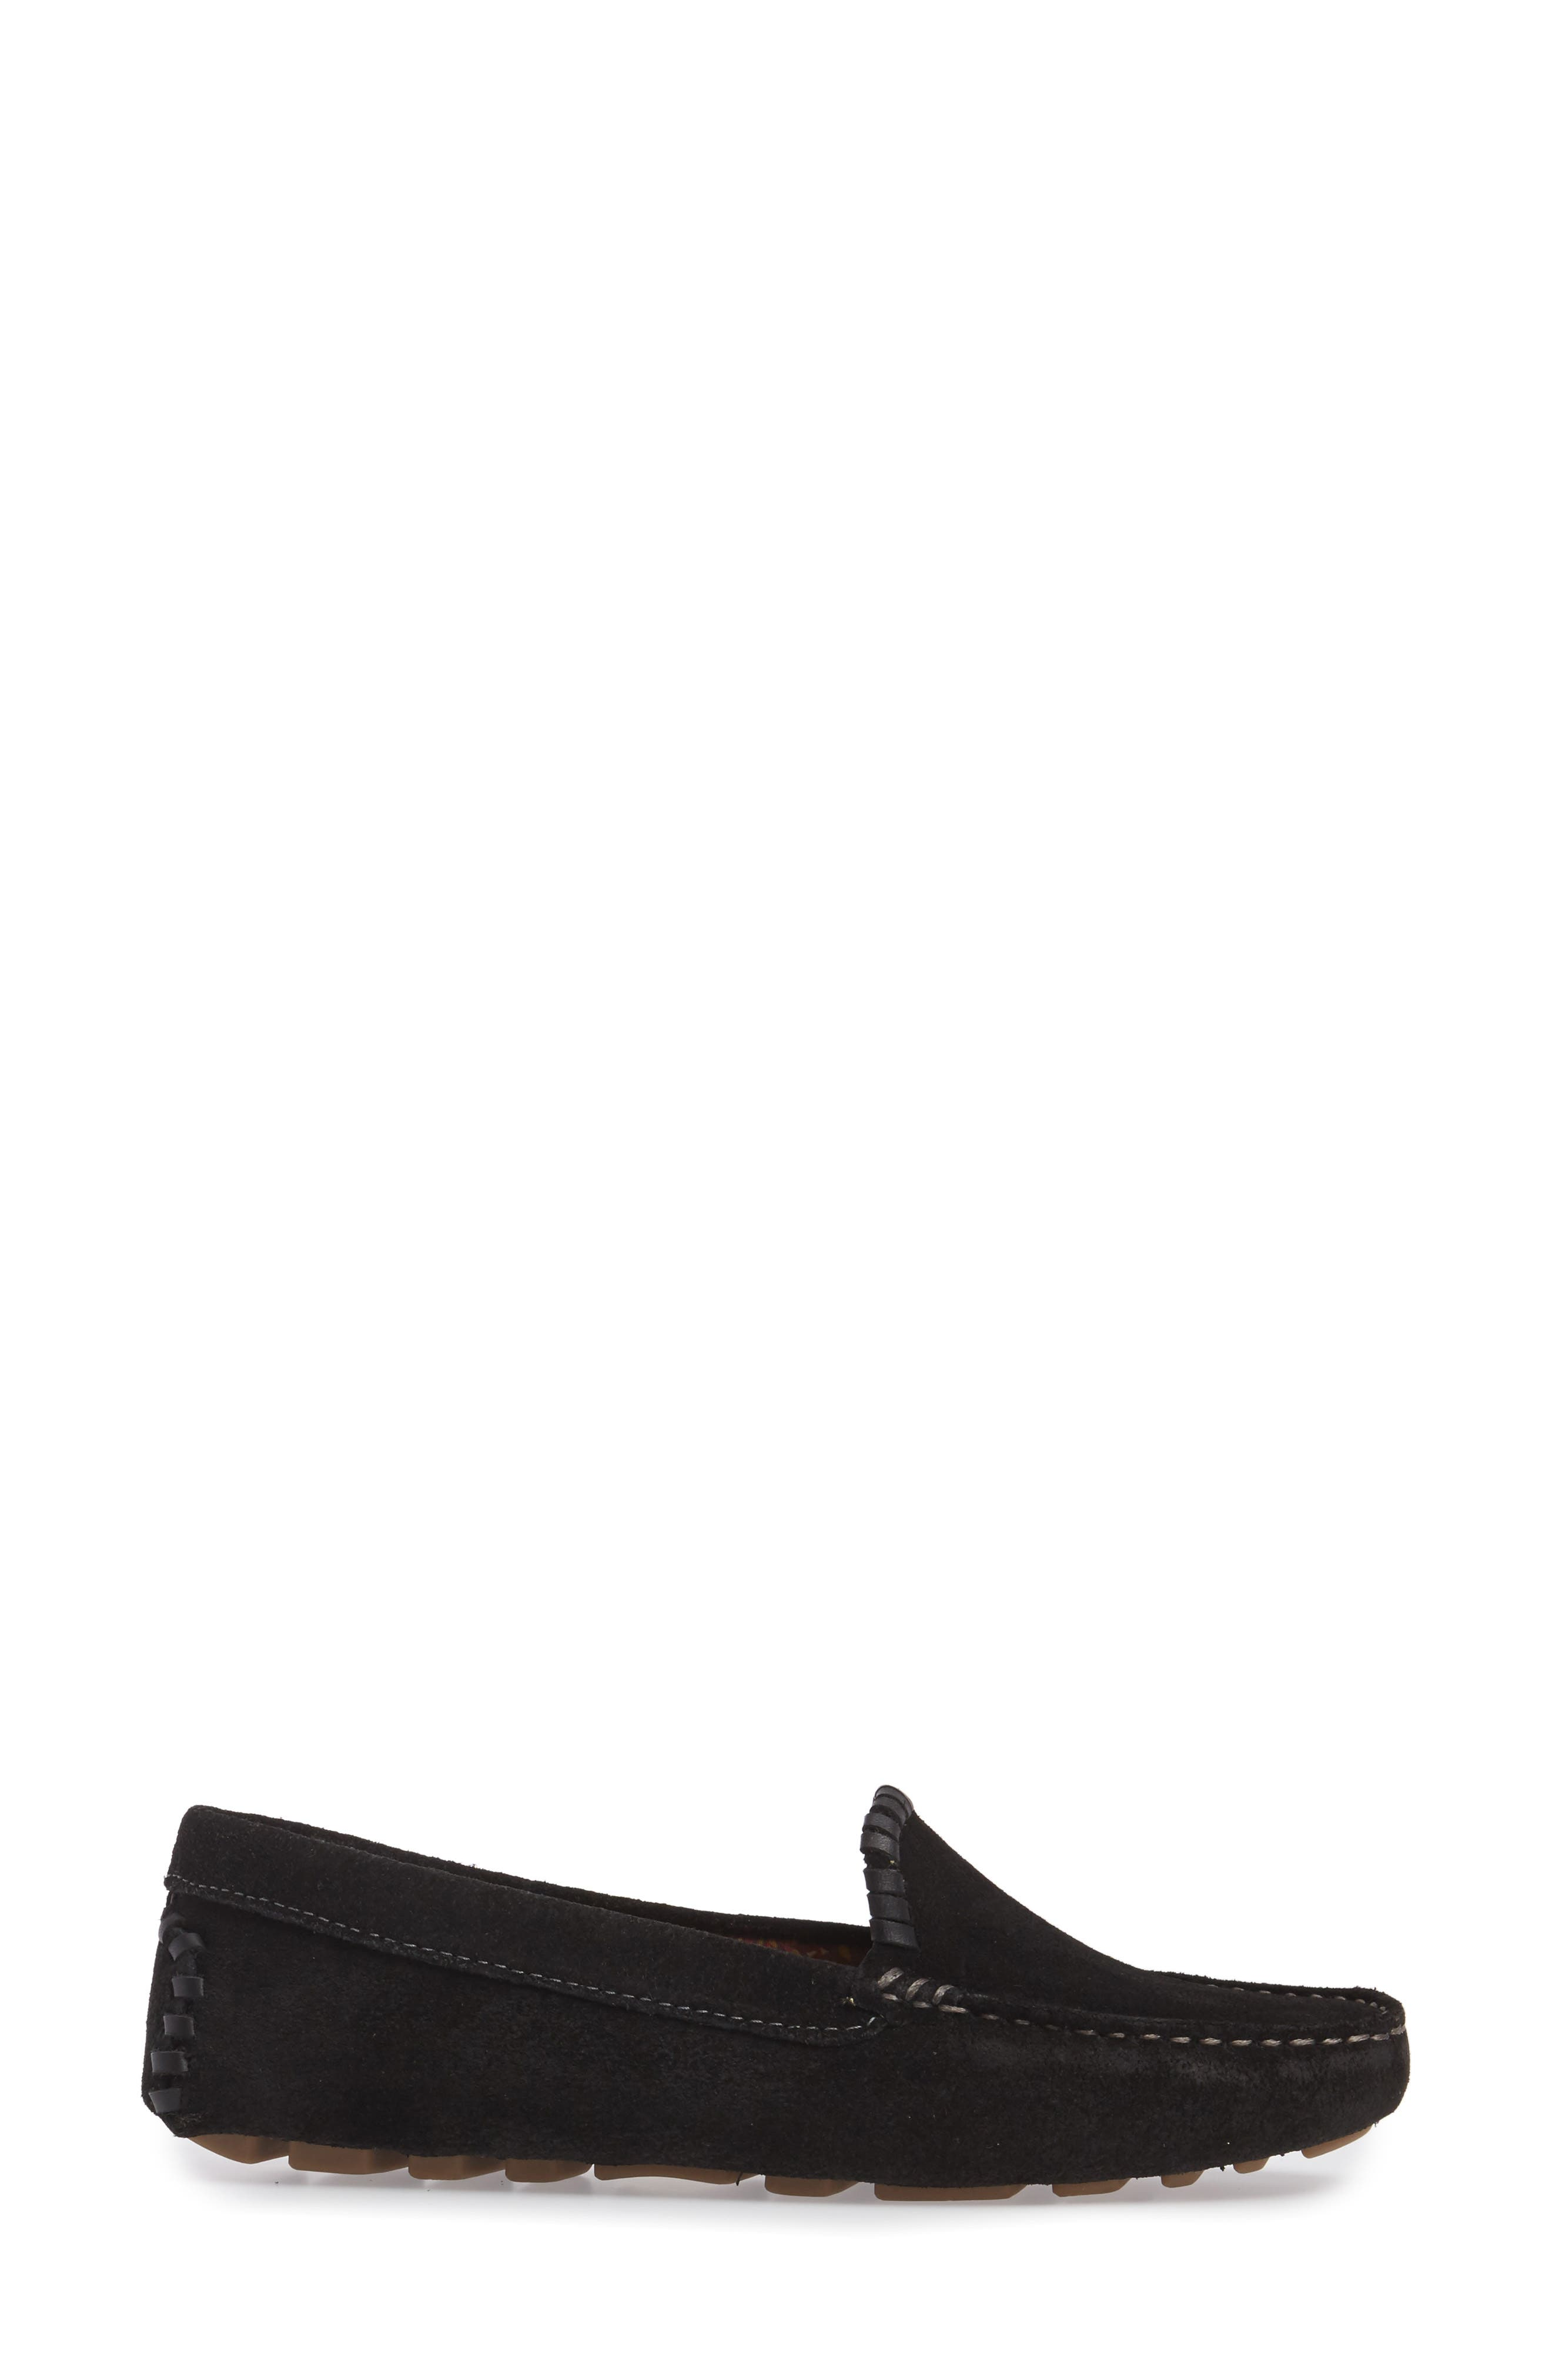 Taylor Driving Loafer,                             Alternate thumbnail 3, color,                             Black Suede